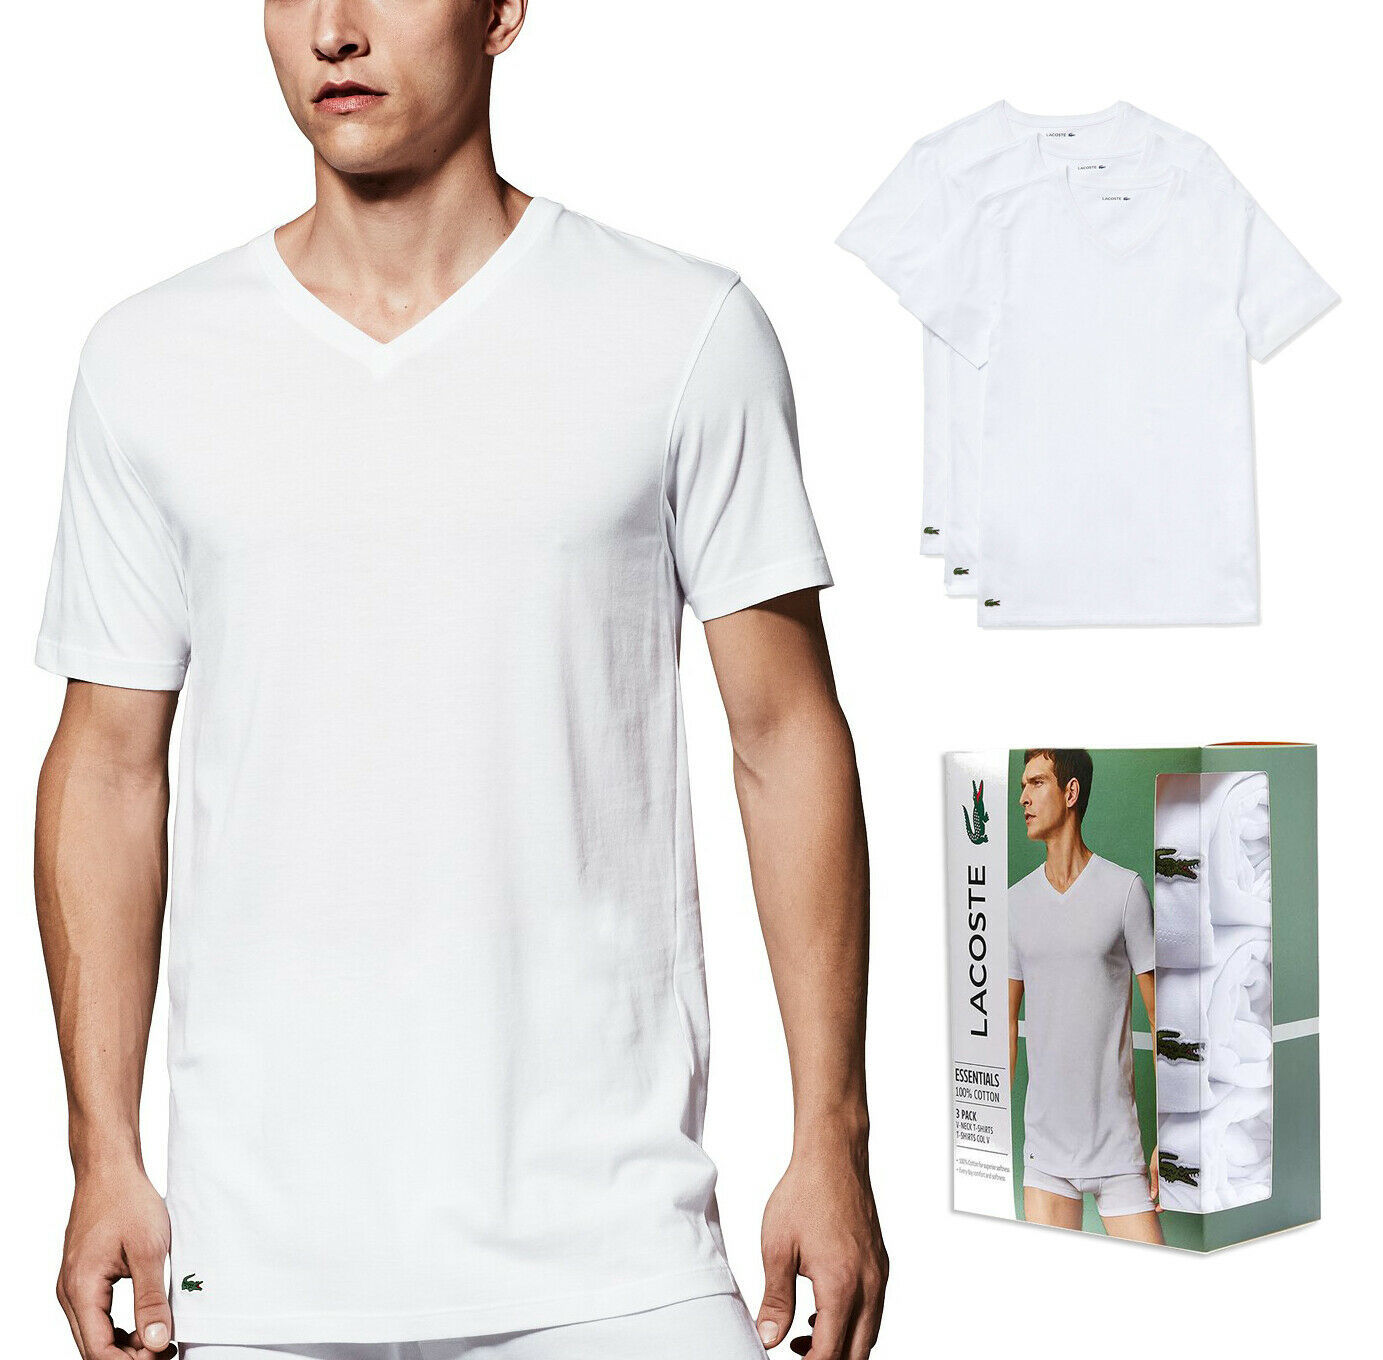 Lacoste Men's 3 Pack Cotton Shirt Regular Fit V-Neck White T-Shirts TH3444-51